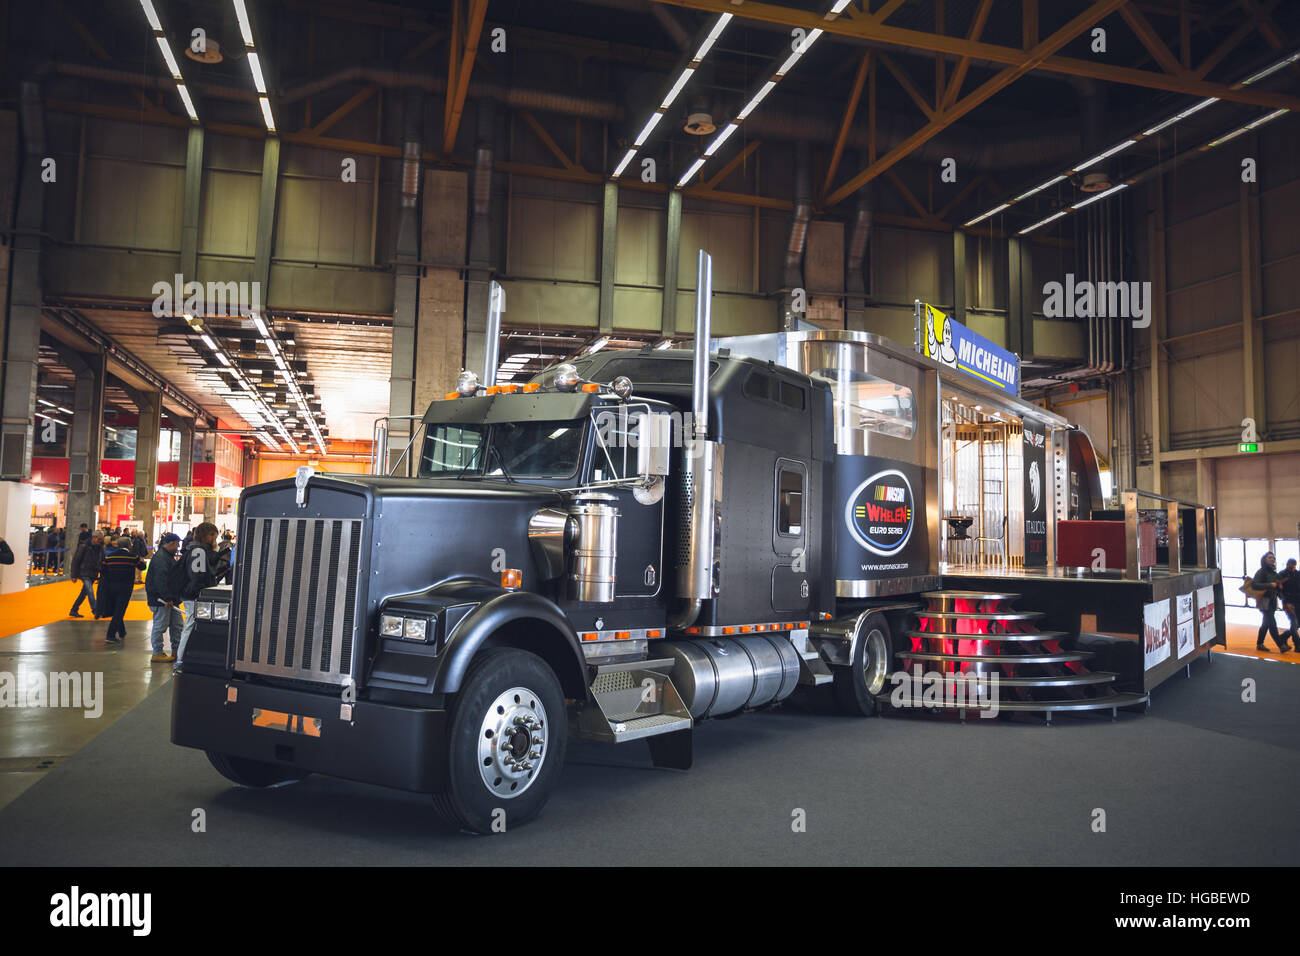 Italy, Bologna motor show 2016, Kenworth truck ICON 900 used by Michelin as booth on exhibitions - Stock Image